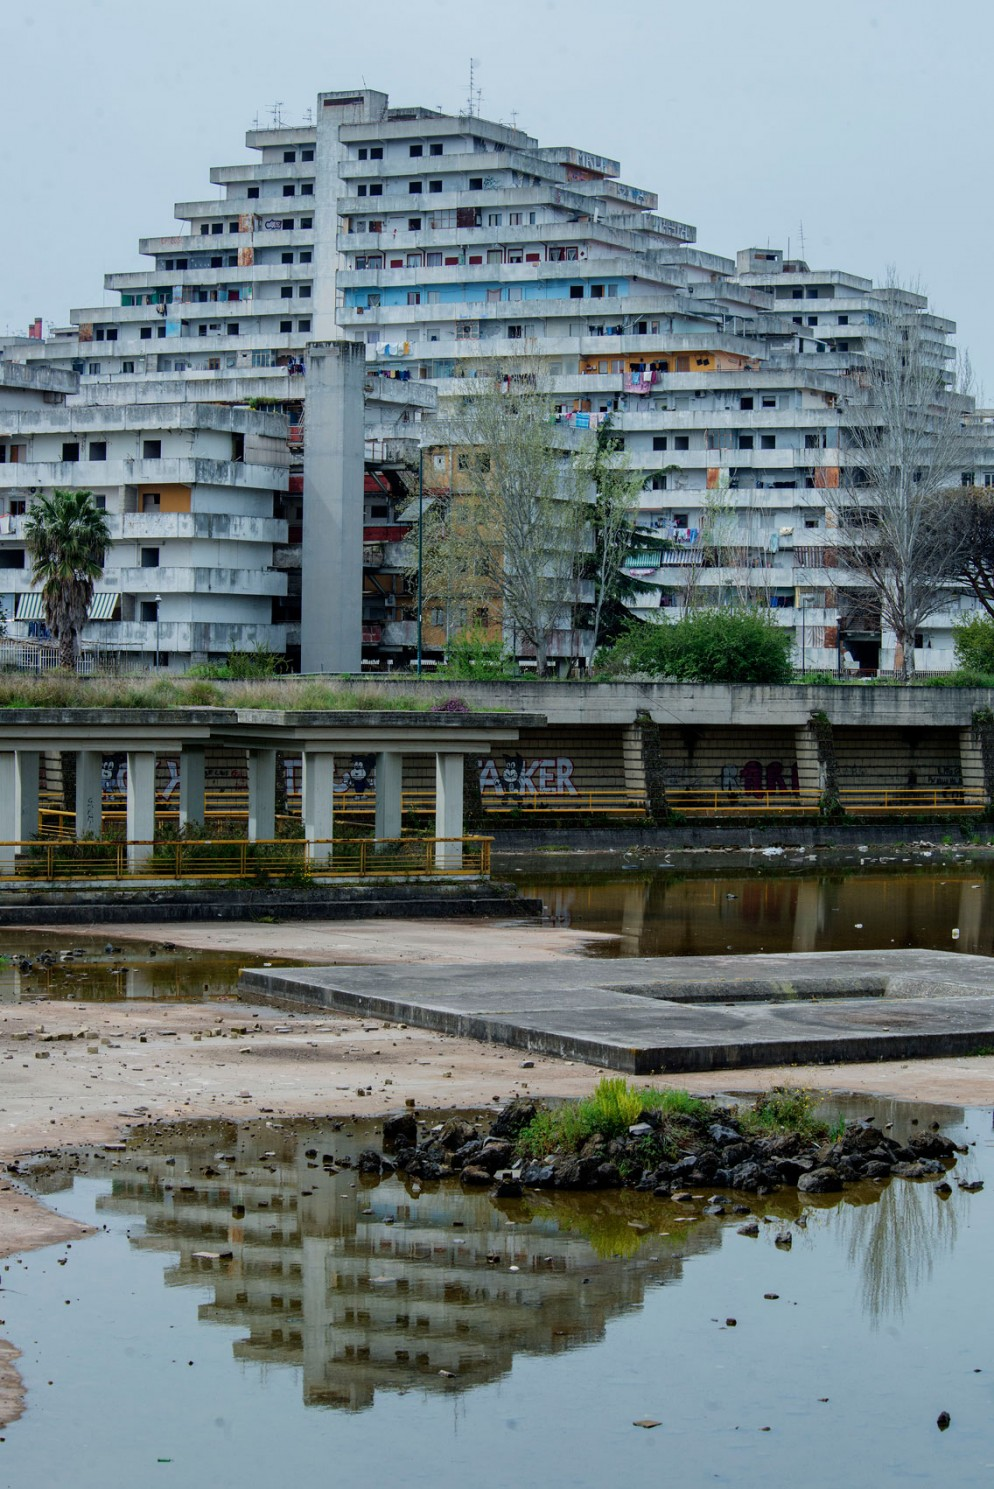 vele-scampia-living-corriere-GettyImages-854197168